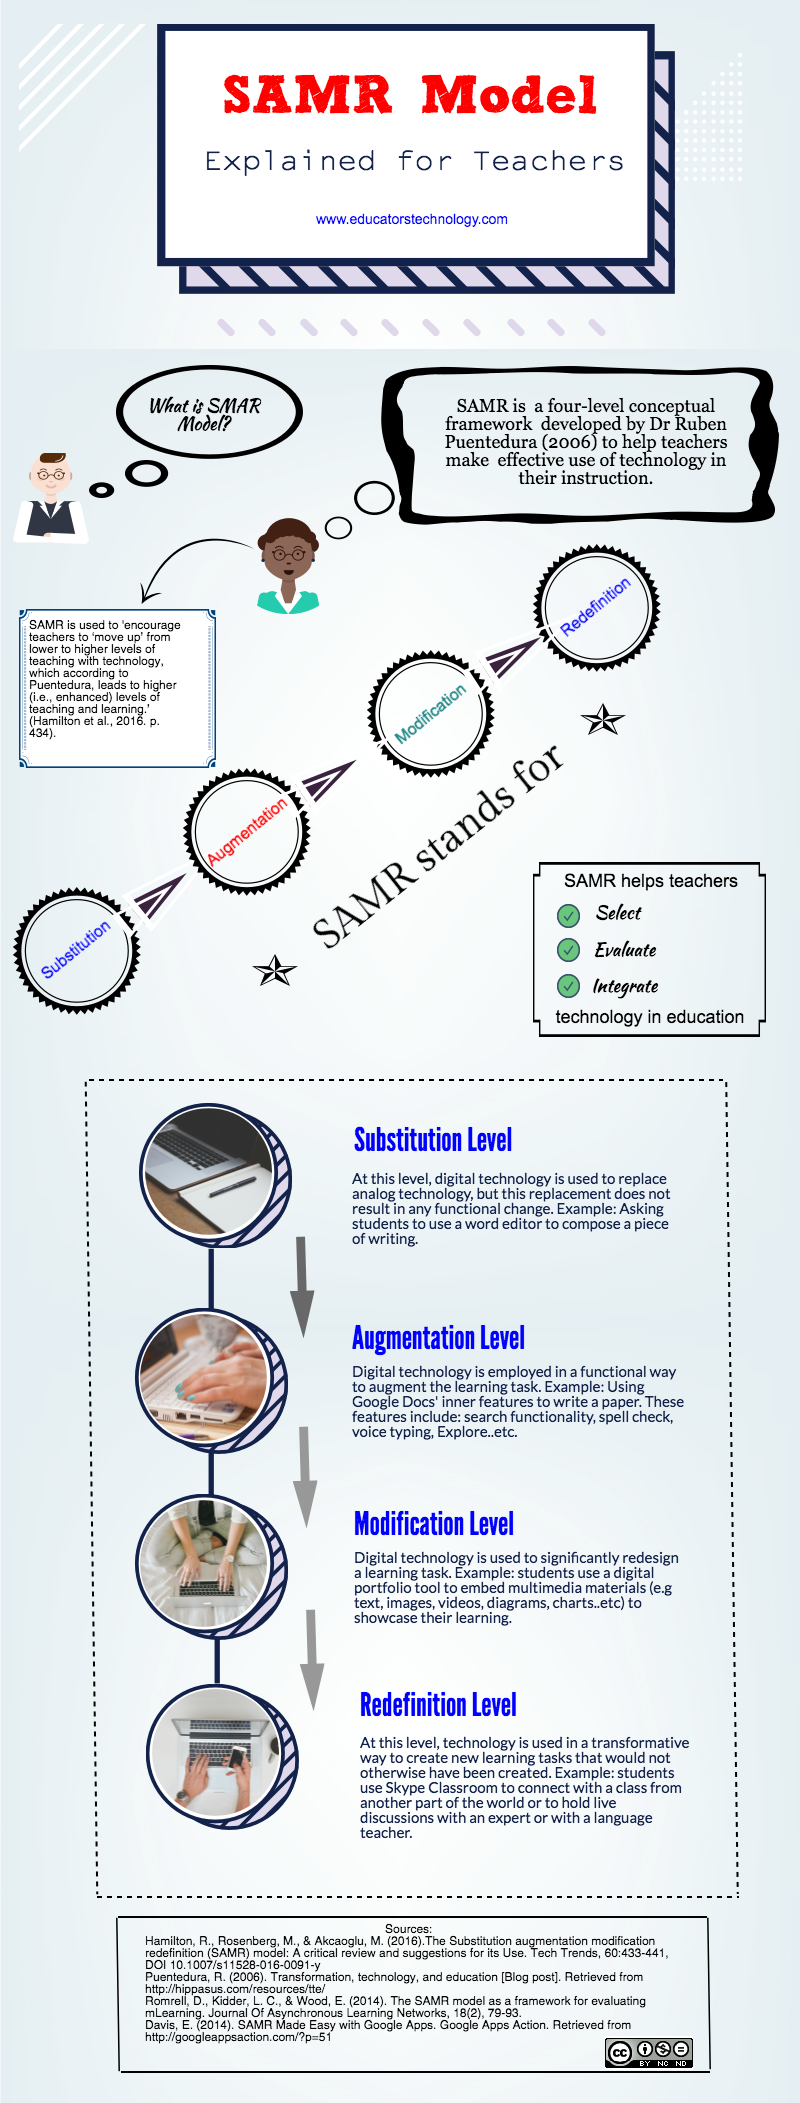 A Handy Infographic Explaining SAMR Model for Teachers